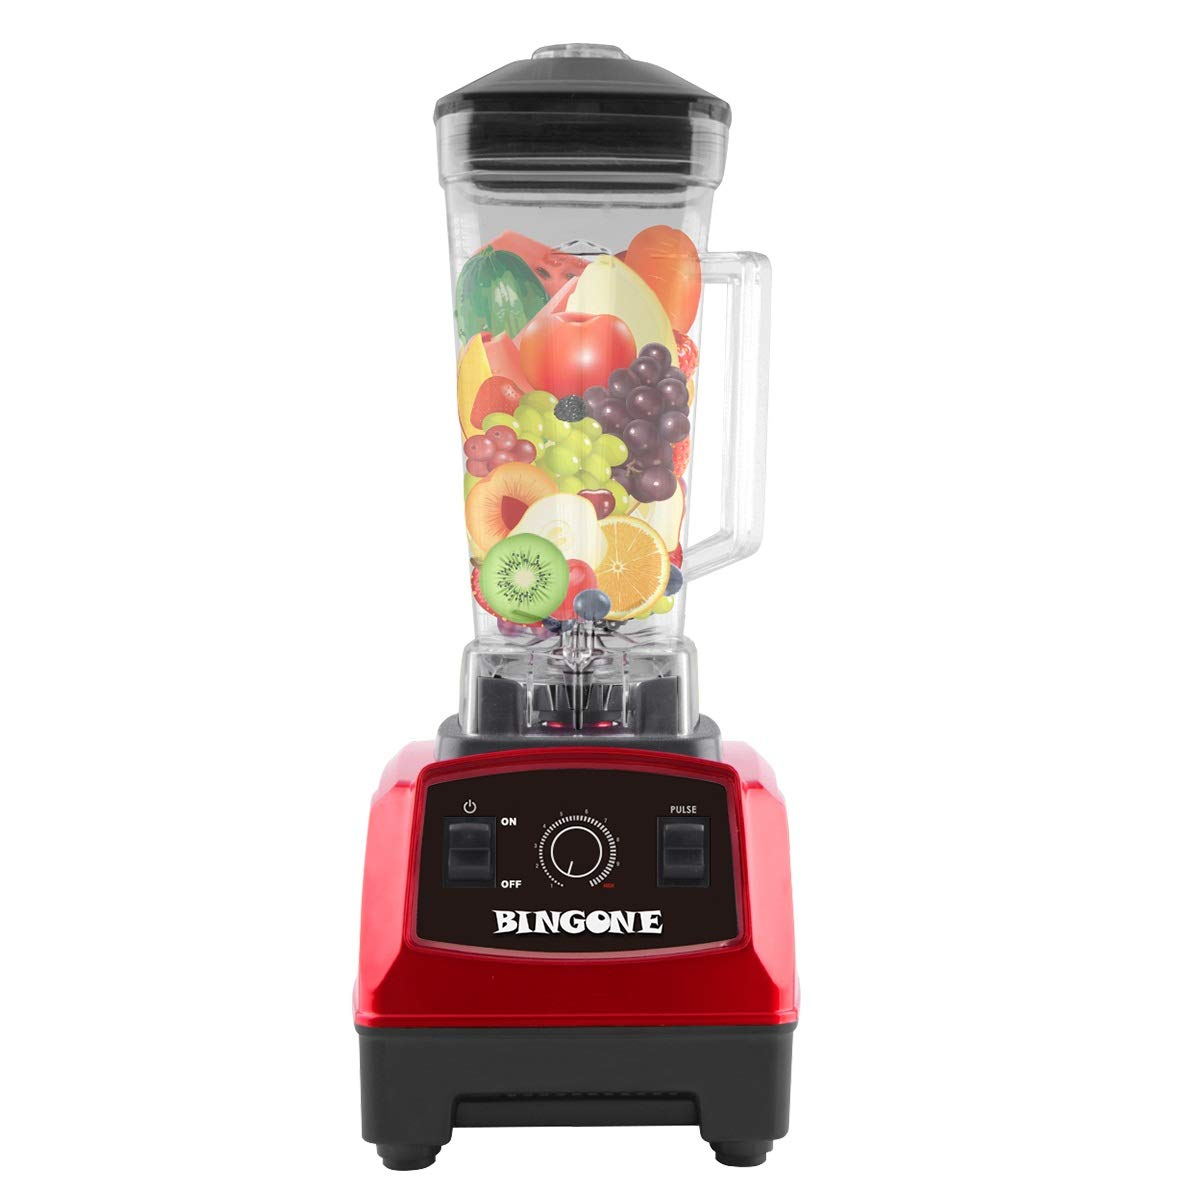 Bingone Commercial Blender,Professional Table Electric 28000 RPM High Speed Smoothie Mixer System with 2.0 Liter BPA-Free FDA Approved Tritan Jar, Nutrition Fruit/Vegetable Juice Maker(Red)